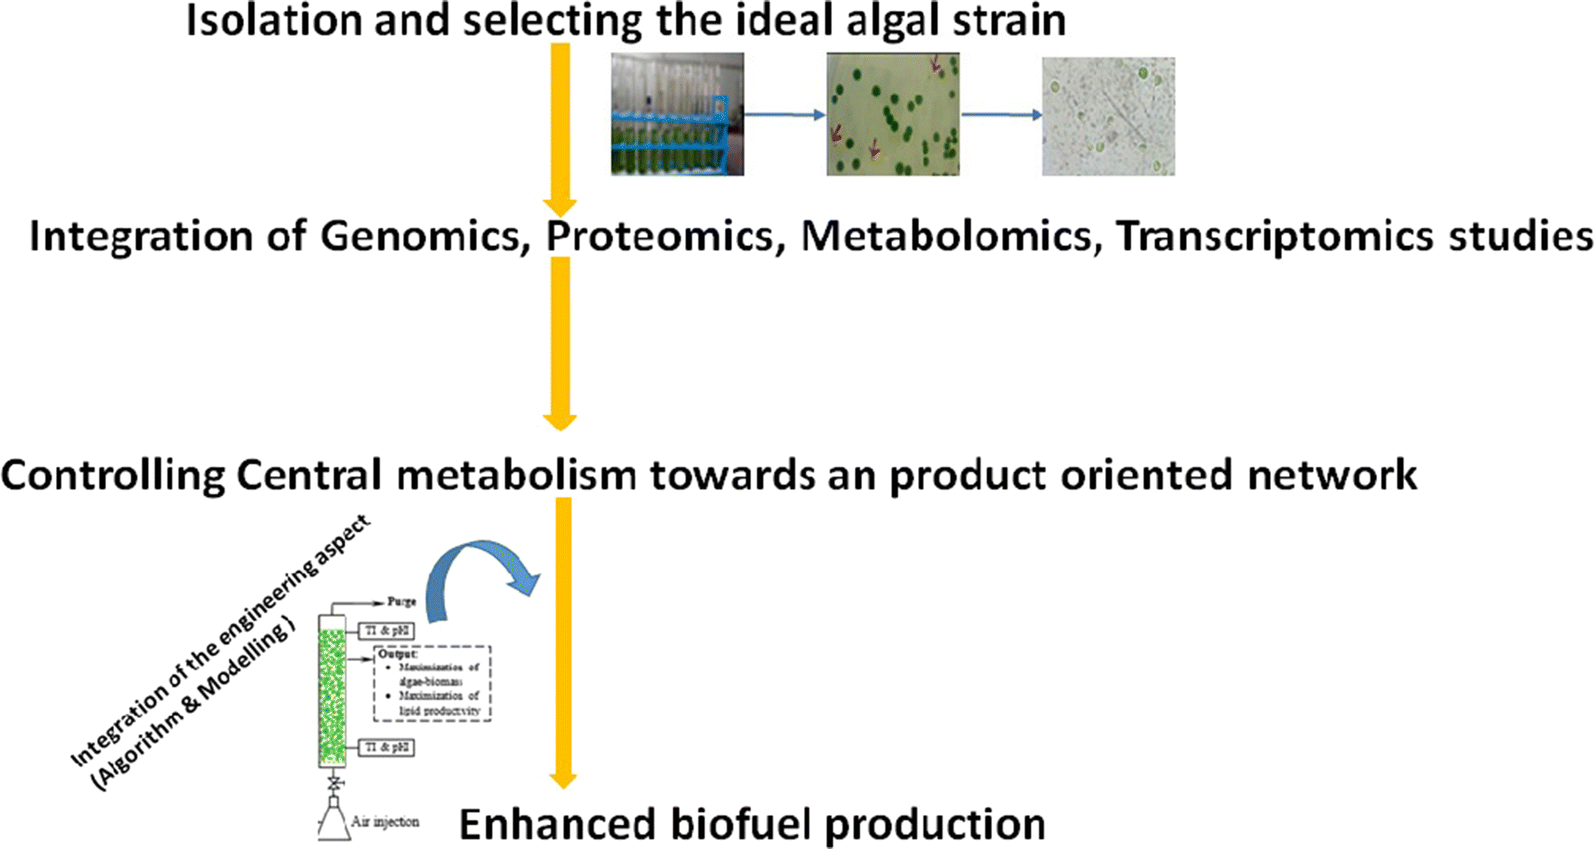 Recent Developments In Synthetic Biology And Metabolic Engineering 122 Electronic Circuit Construction Techniques Review Of Some This Also Examines The Role Played By Microalgae As Biorefineries Microalgal Culture Conditions Various Operating Parameters That Need To Be